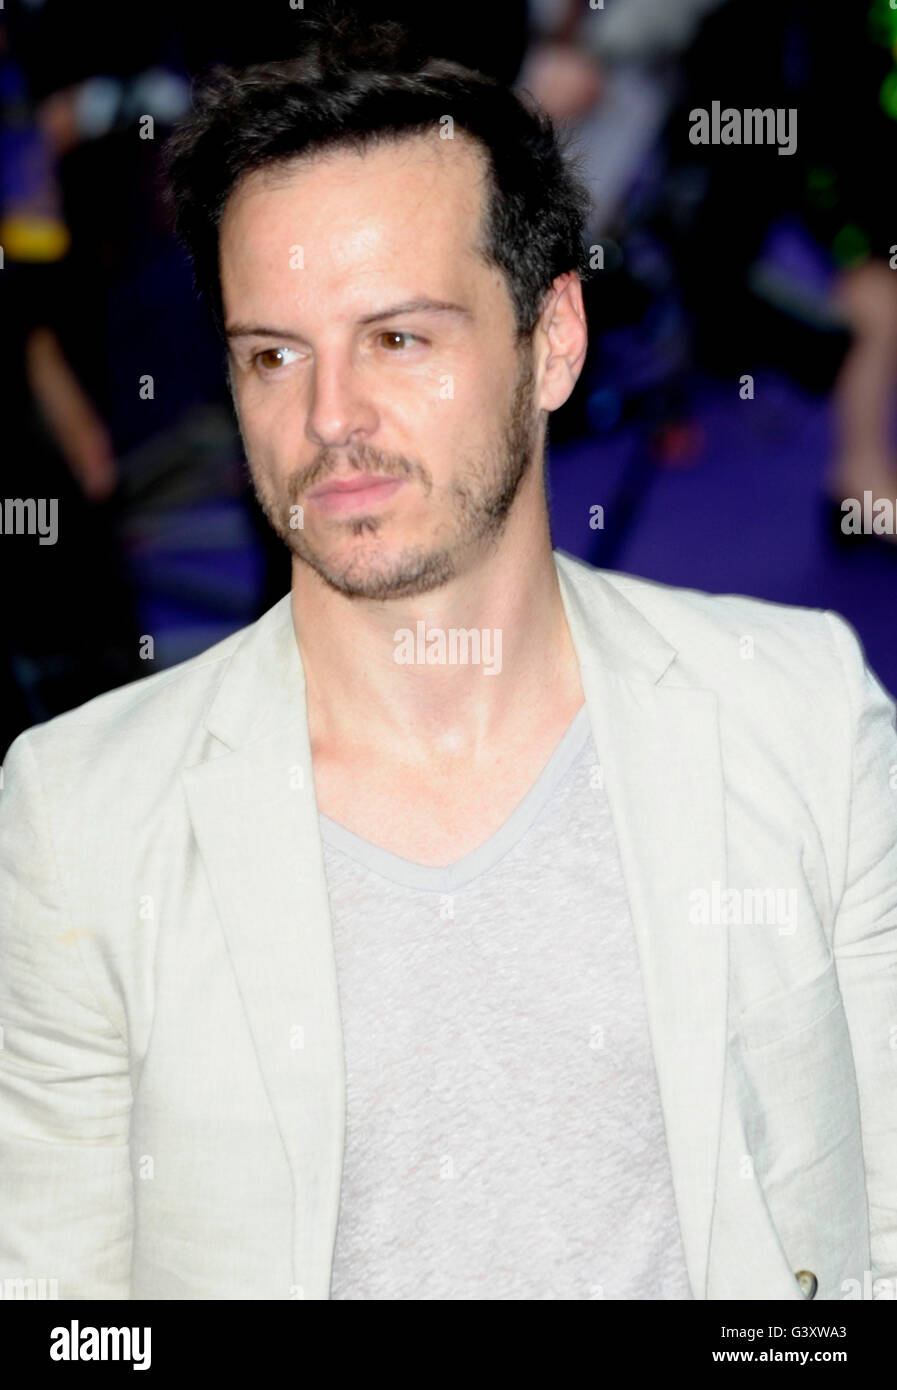 London, UK. 15th June, 2016. Jack Gallloway attending the Opening Night of DISNEY S ALADDIN at Prince Edward Theatre - Stock Image